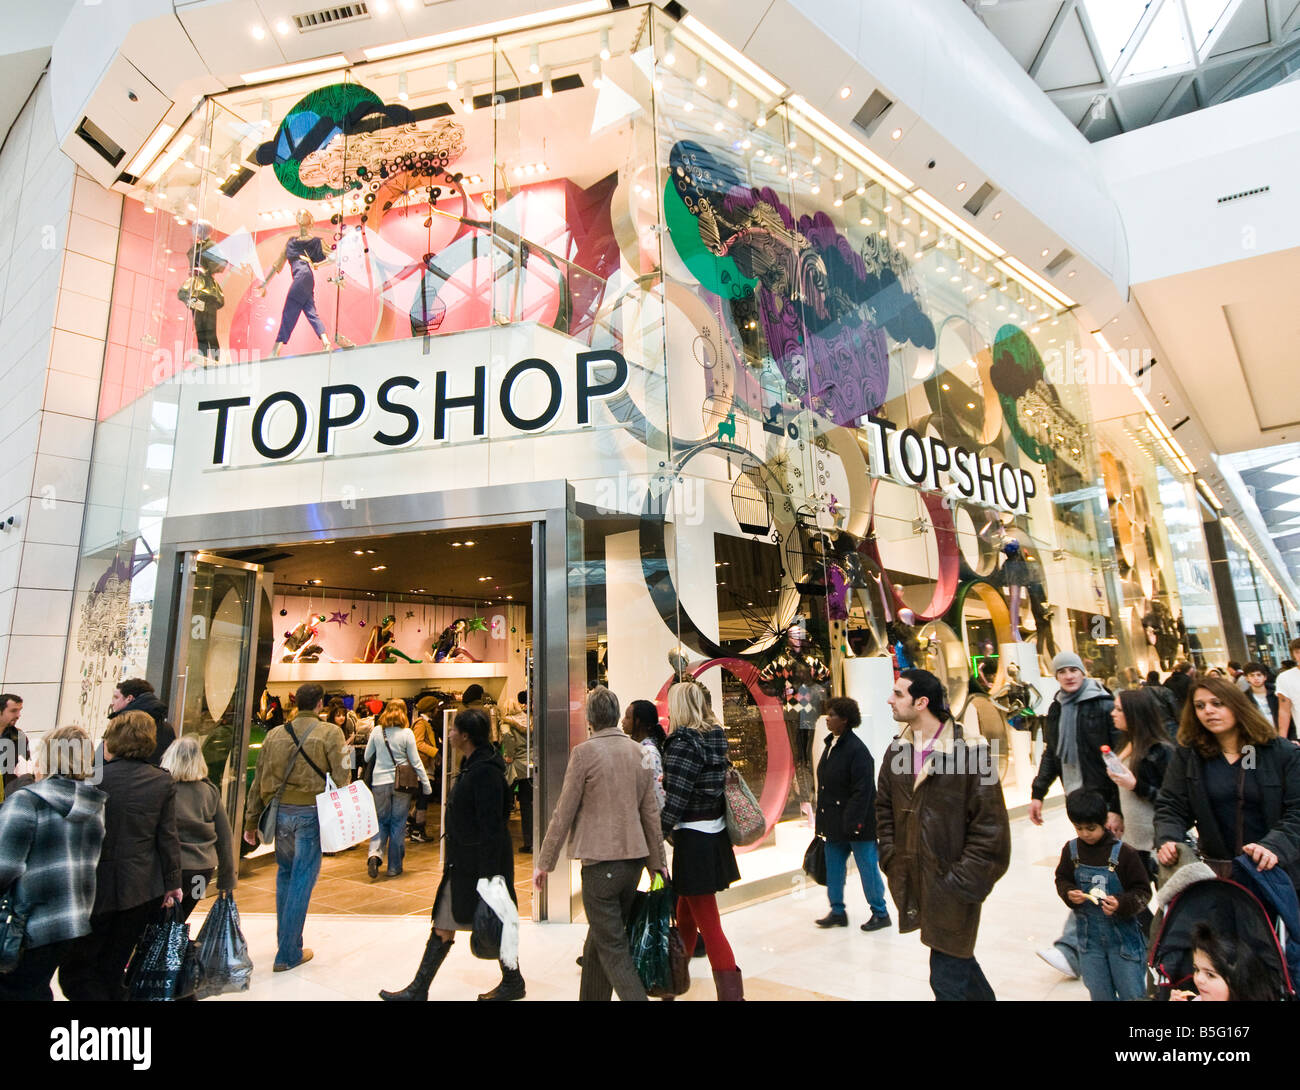 Shoppers ouside Topshop in Westfield shopping mall London - Stock Image